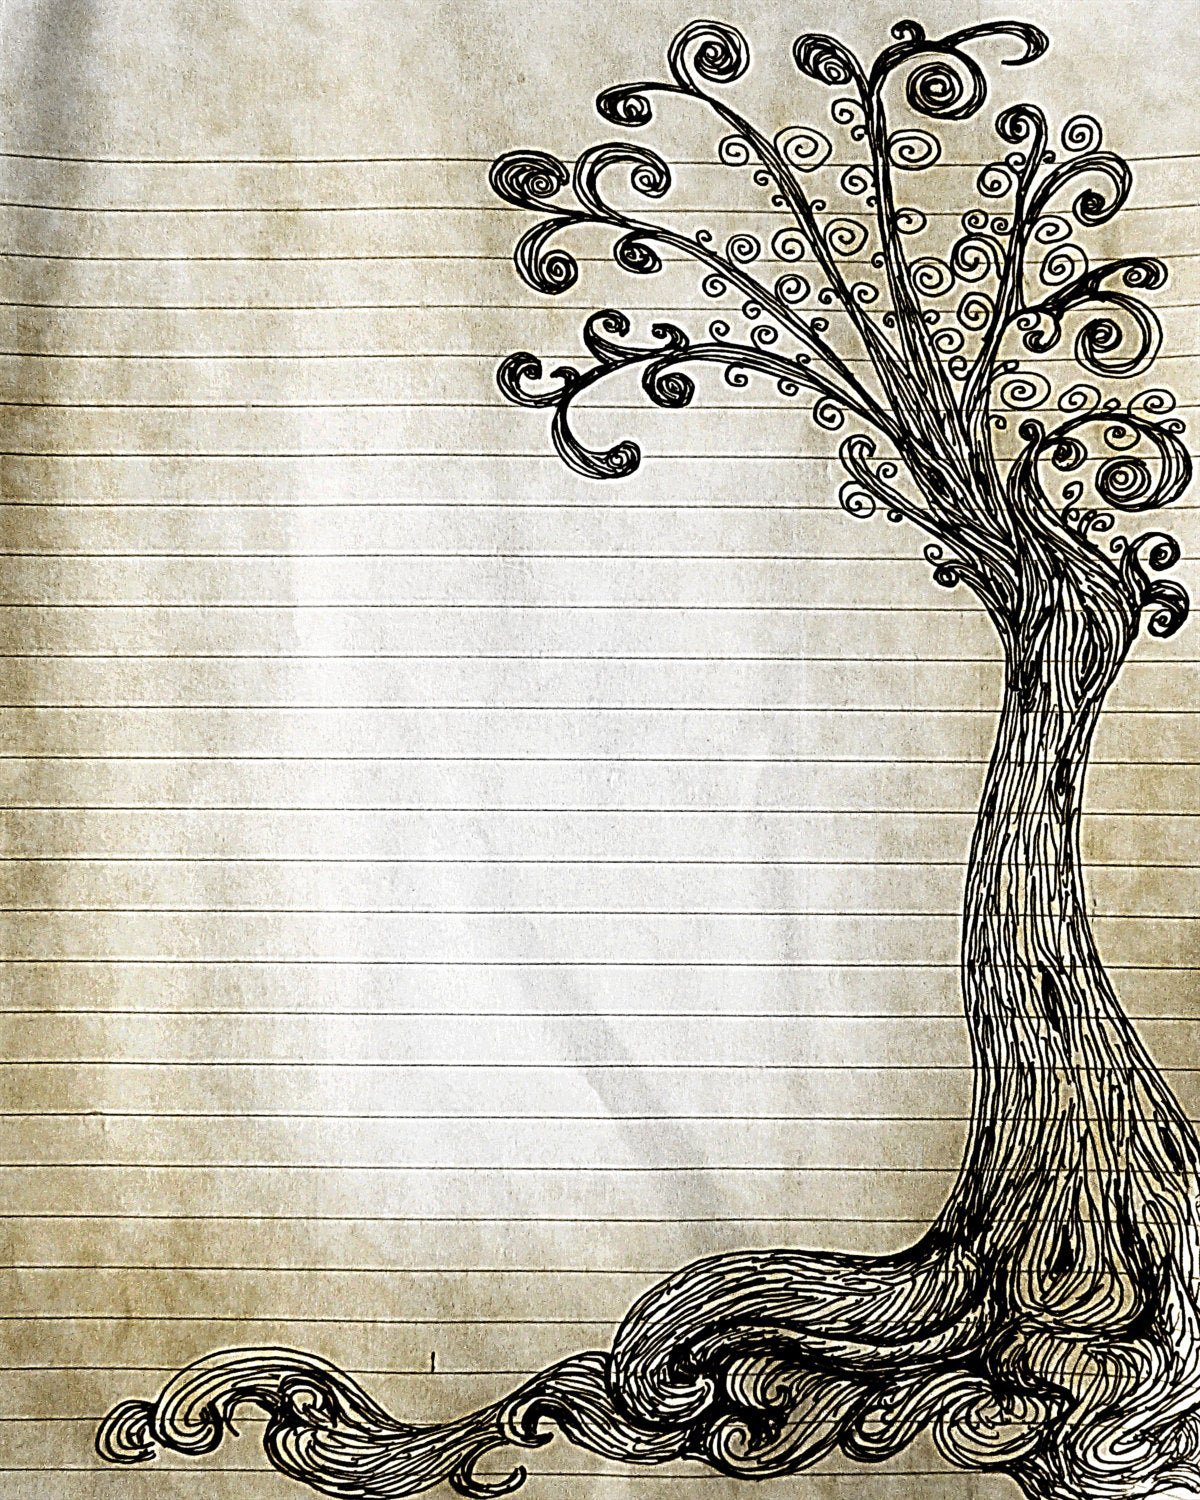 Printable Lined Stationery Paper Inspirational Printable Pen and Ink Tree Drawing Lined Journal Page Digital